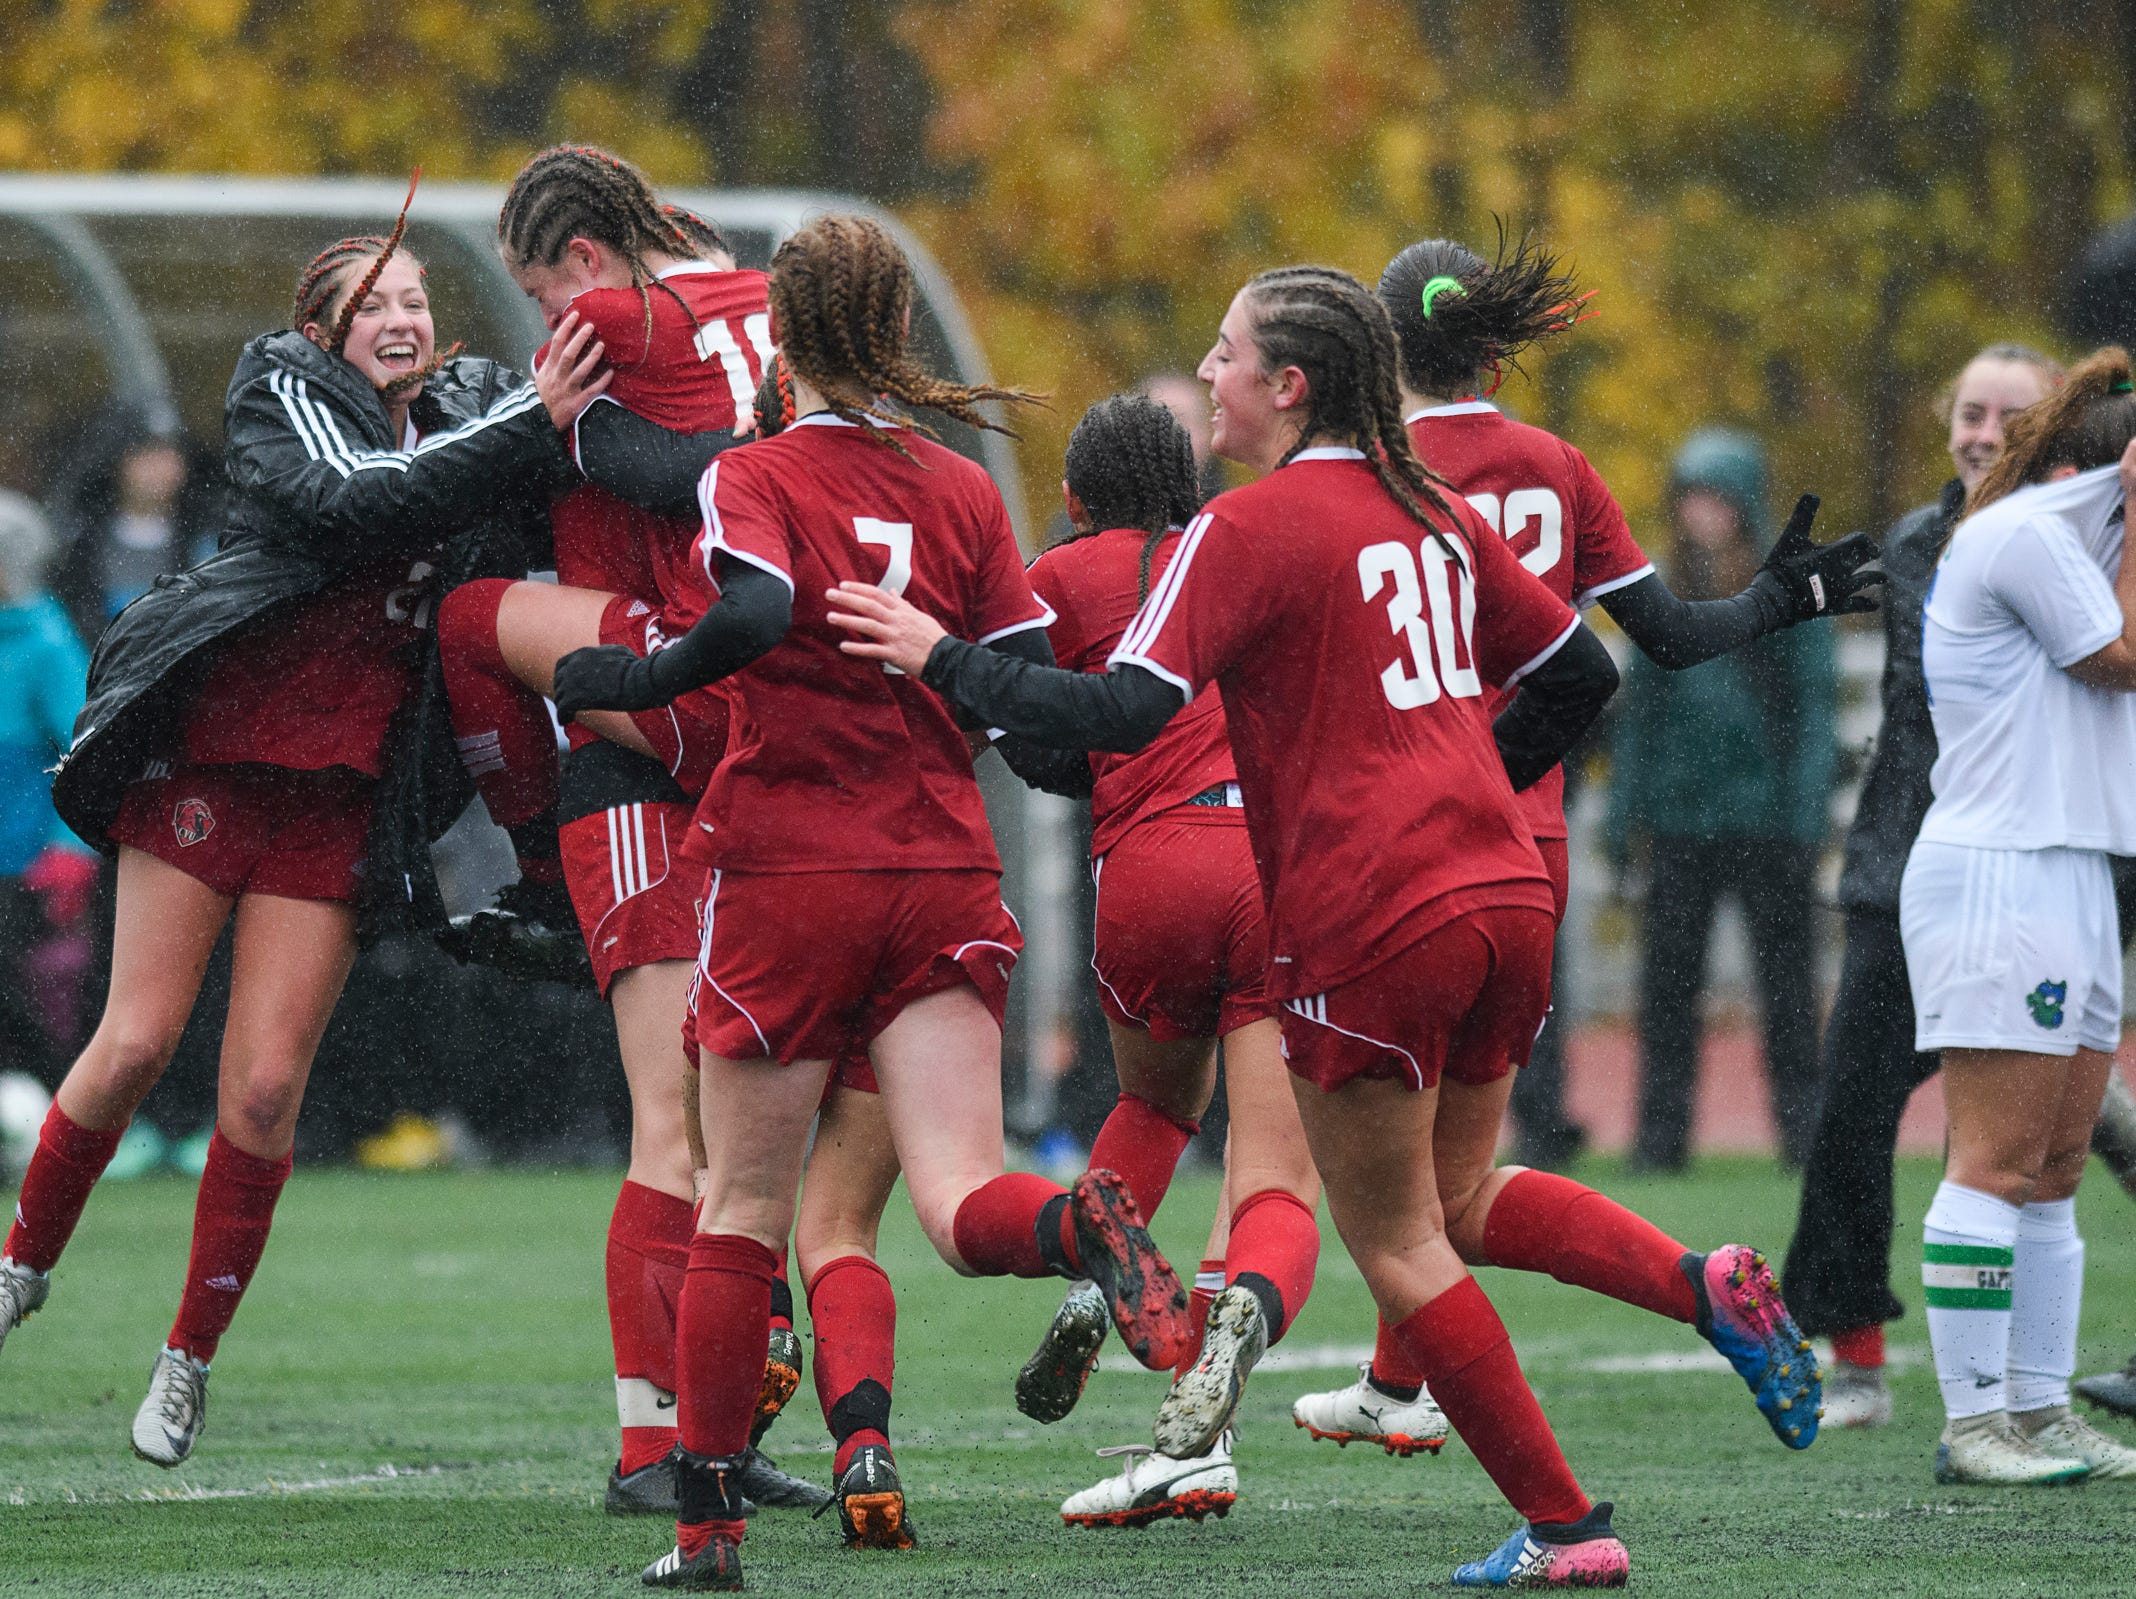 CVU celebrates the championship at the conclusion of the division I girls soccer championship game between the Colchester Lakers and the Champlain Valley Union Redhawks at Buck Hard Field on Saturday morning November 3, 2018 in Burlington.